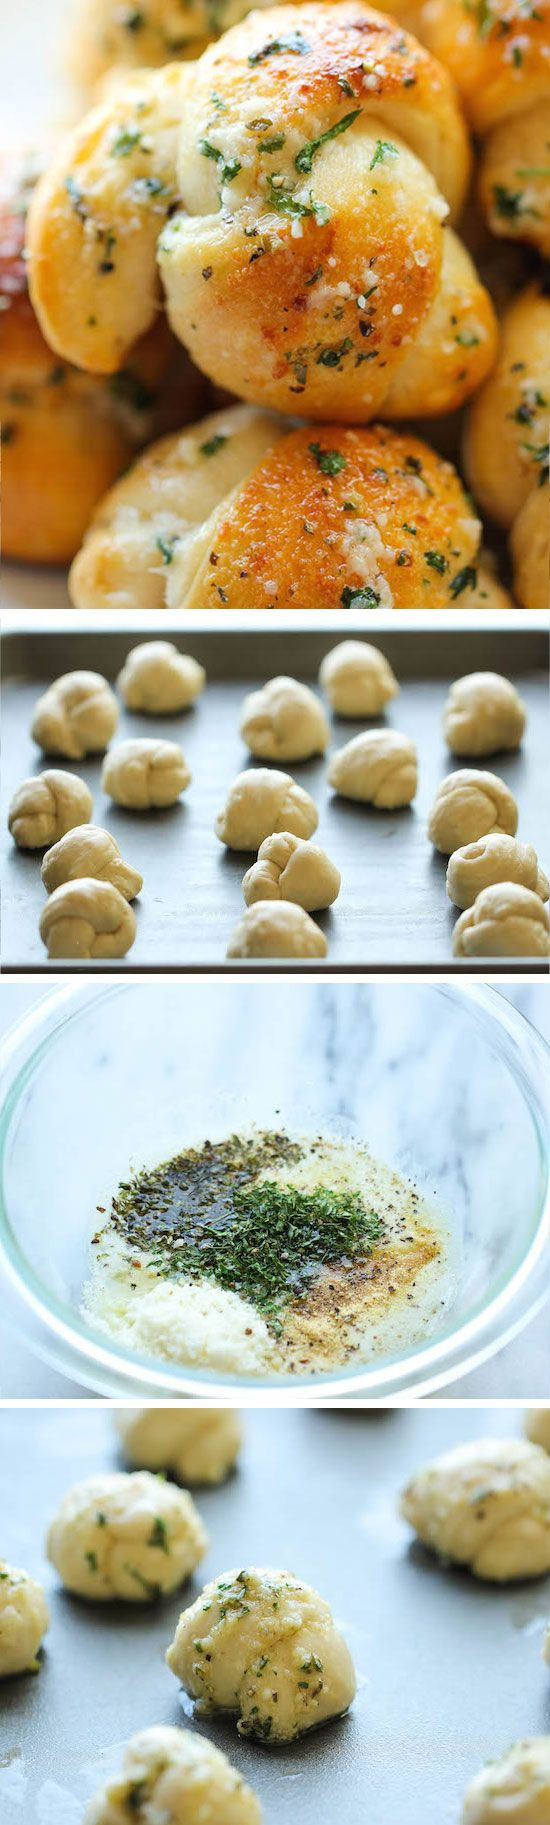 Easter Dinner For A Crowd  17 Best ideas about Easter Food on Pinterest